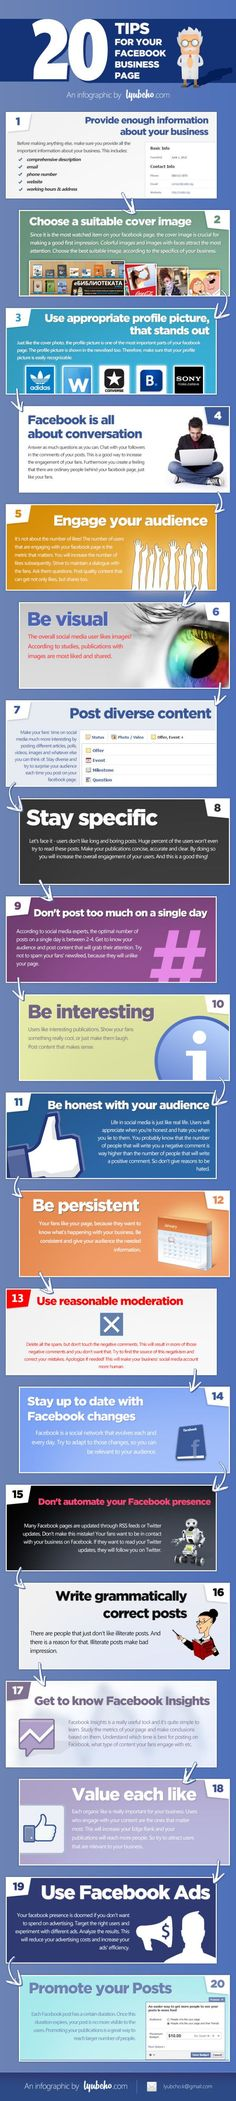 20 Tips For Your Facebook Business Page - #infographic